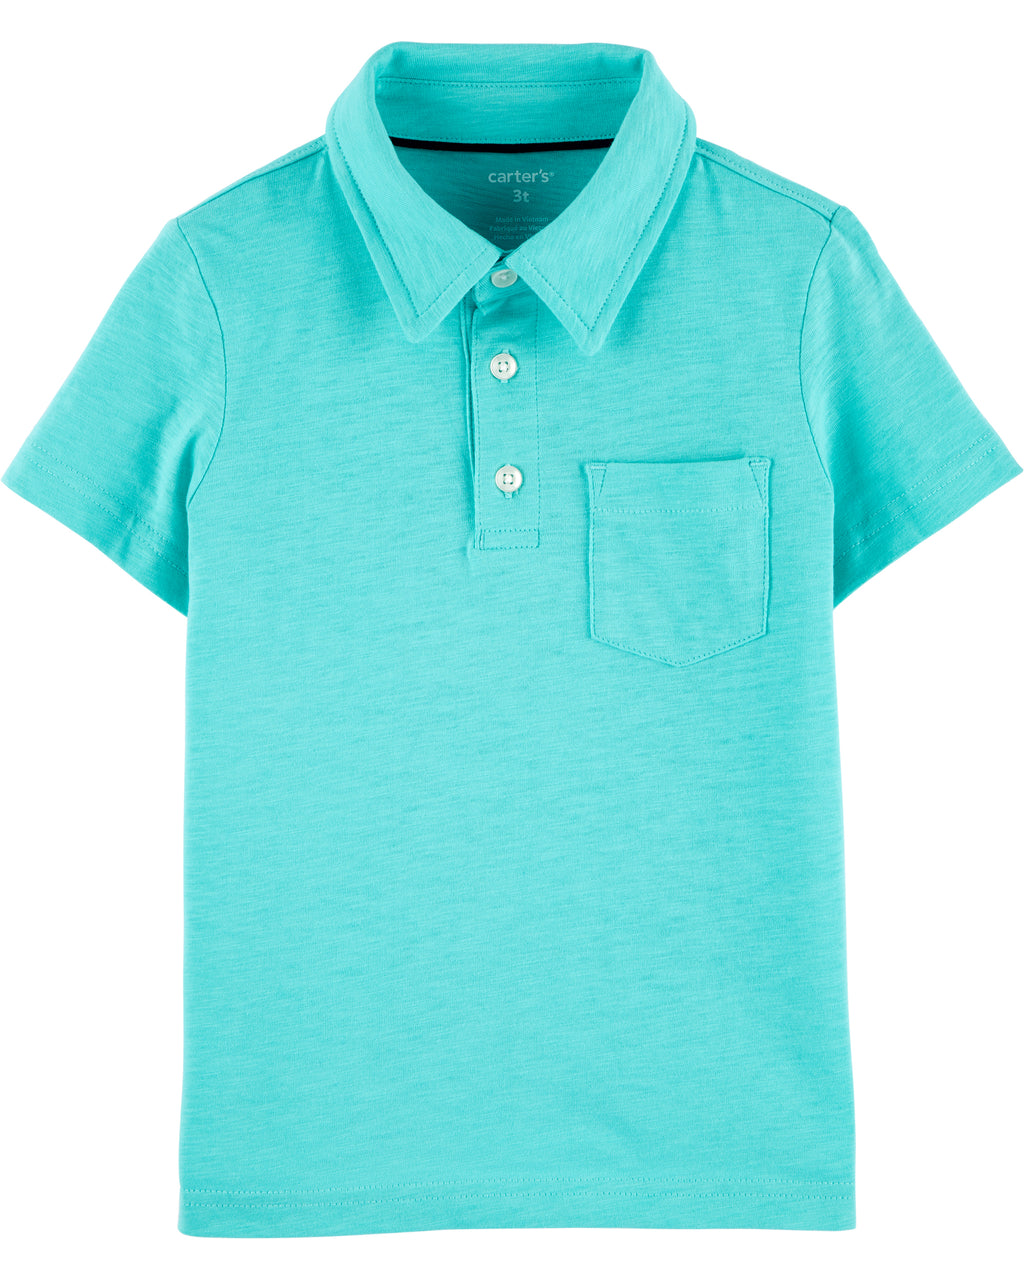 Camiseta Polo Carter's